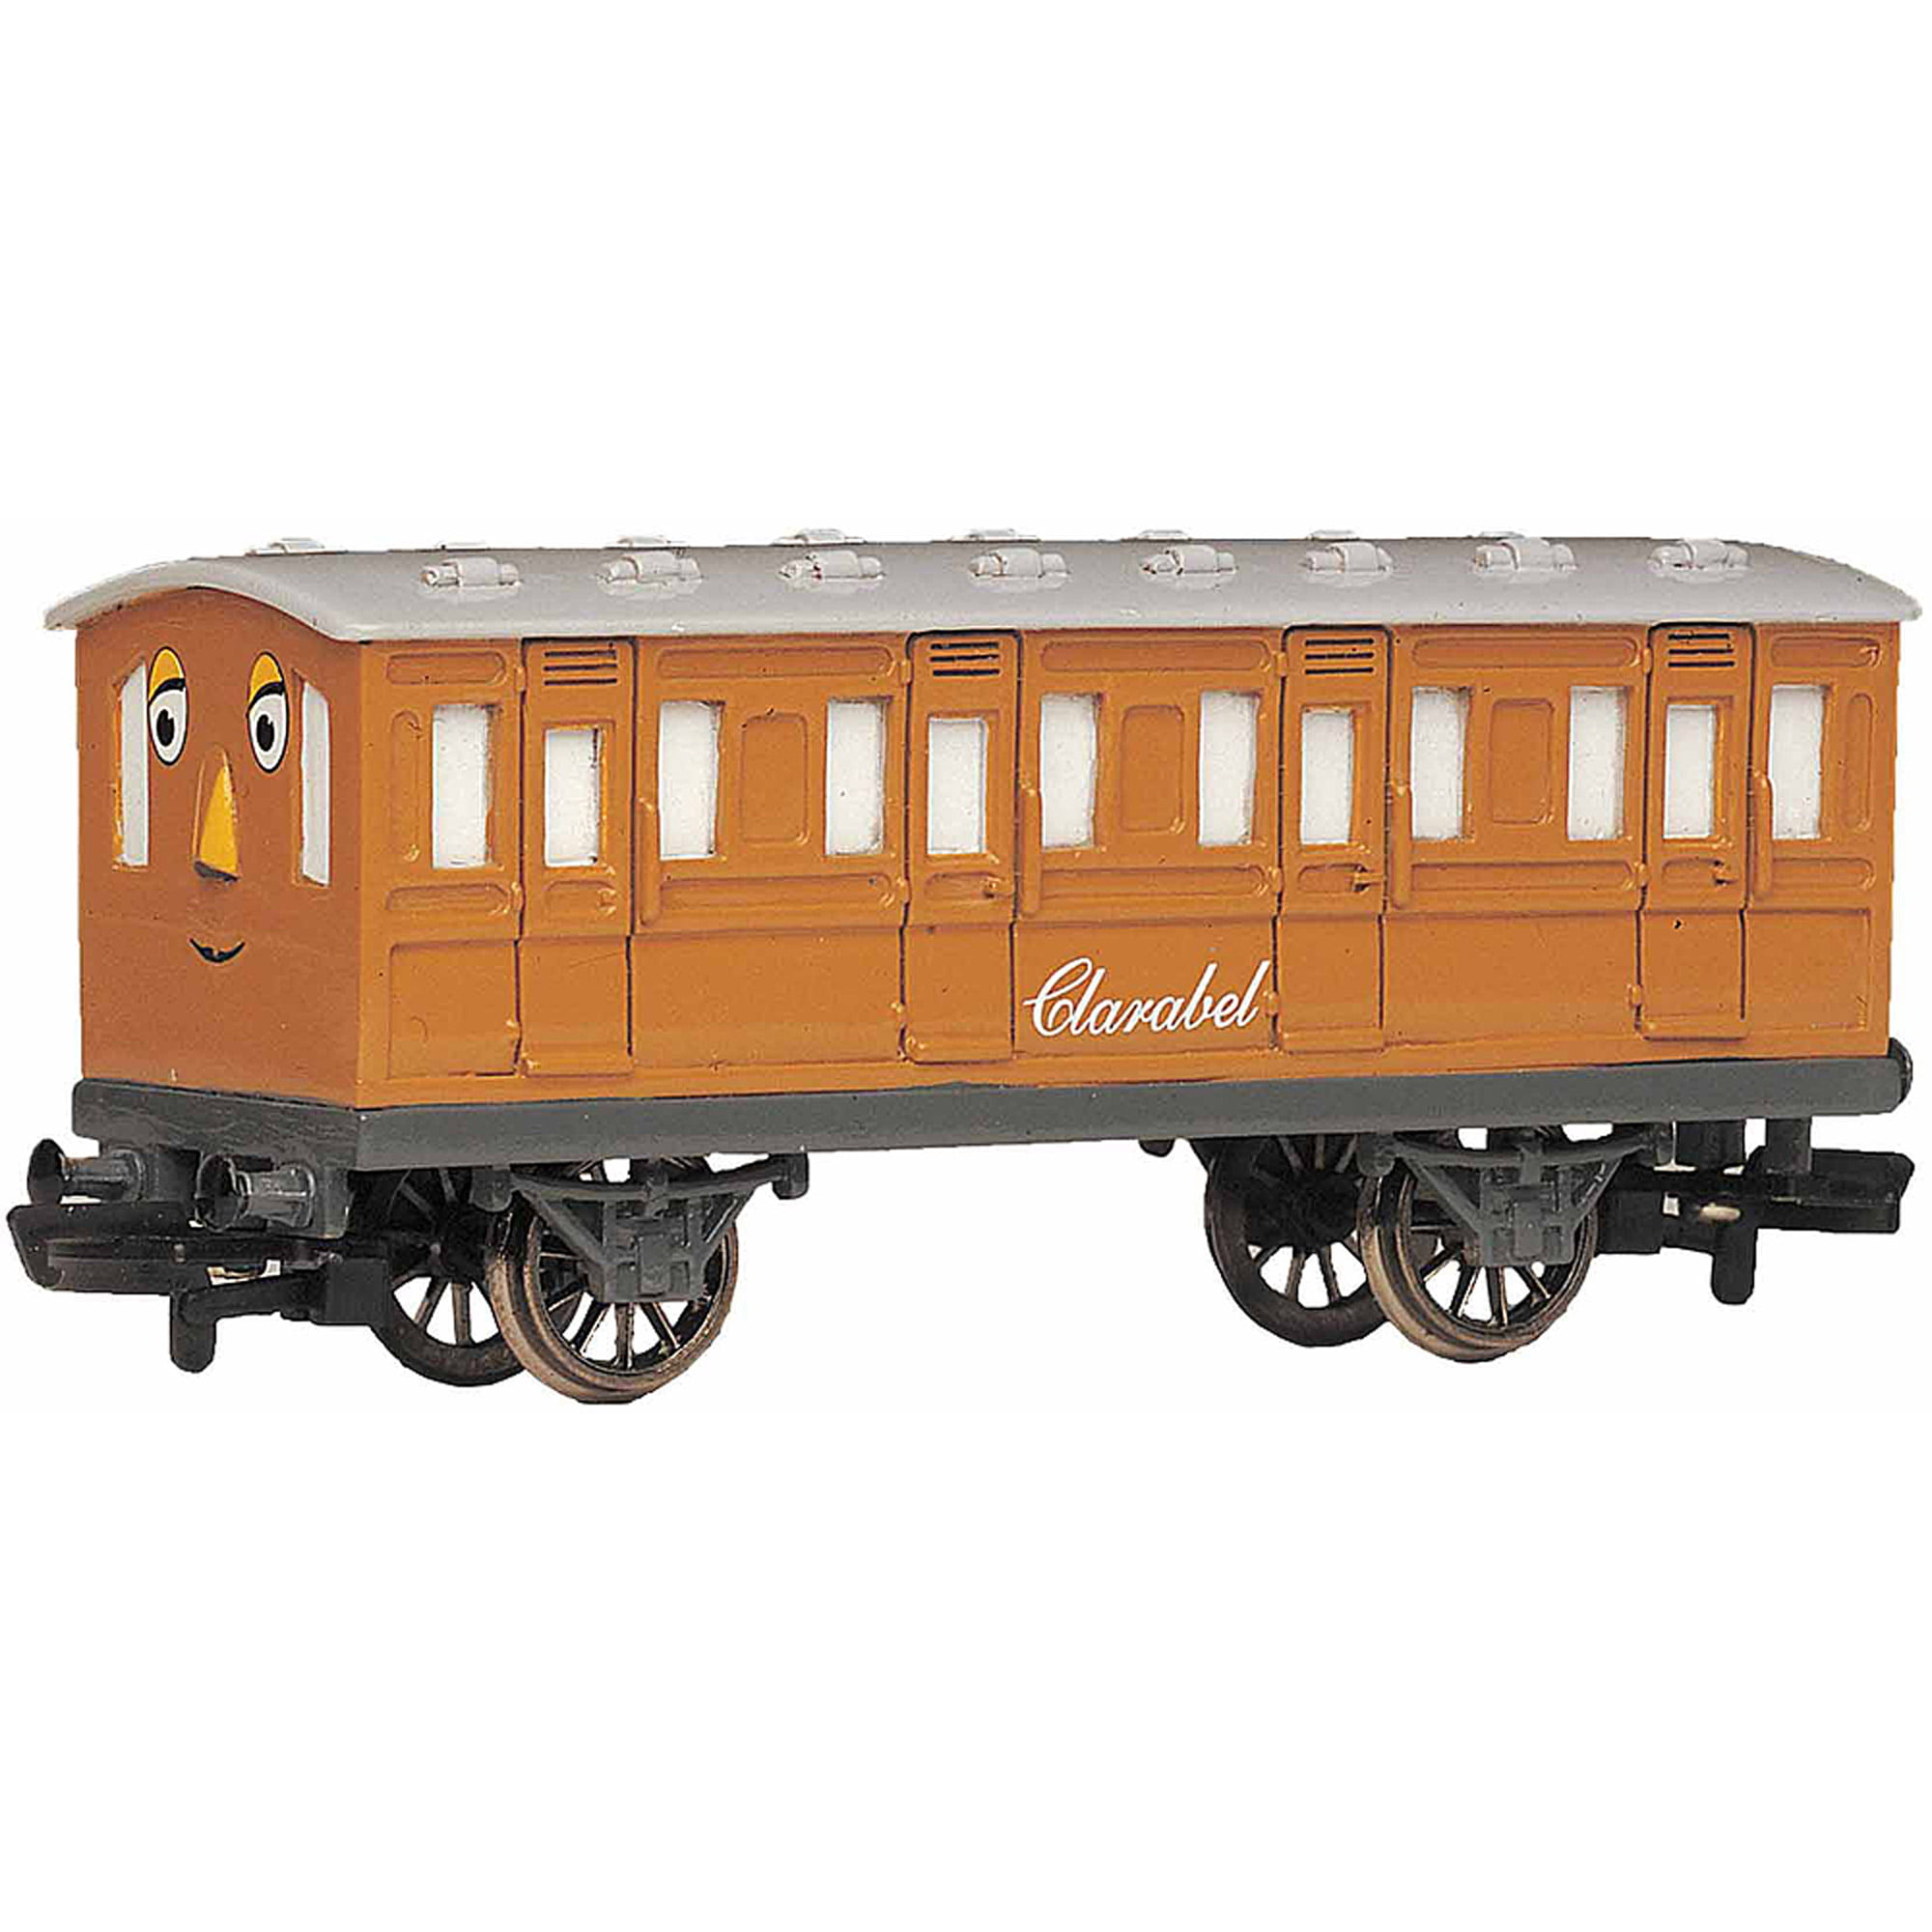 Bachmann Trains Thomas and Friends Clarabel Coach, HO Scale Train by Bachmann